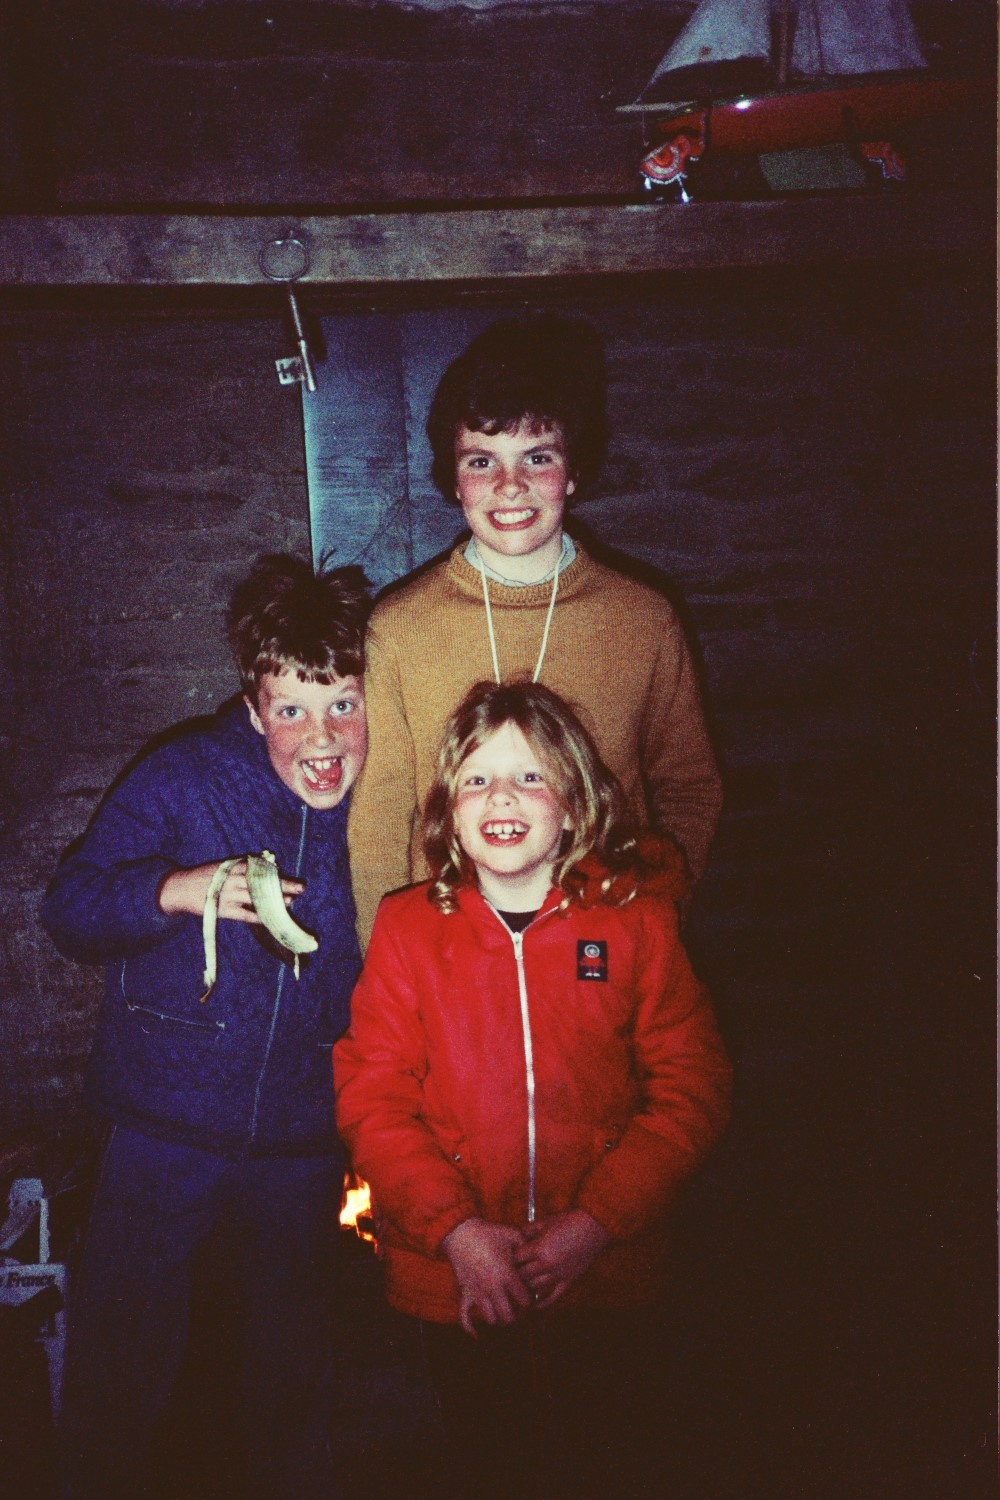 Matt Shearer, Russel Shearer and Amy Shearer at Amberslone Cottage, Spring 1982